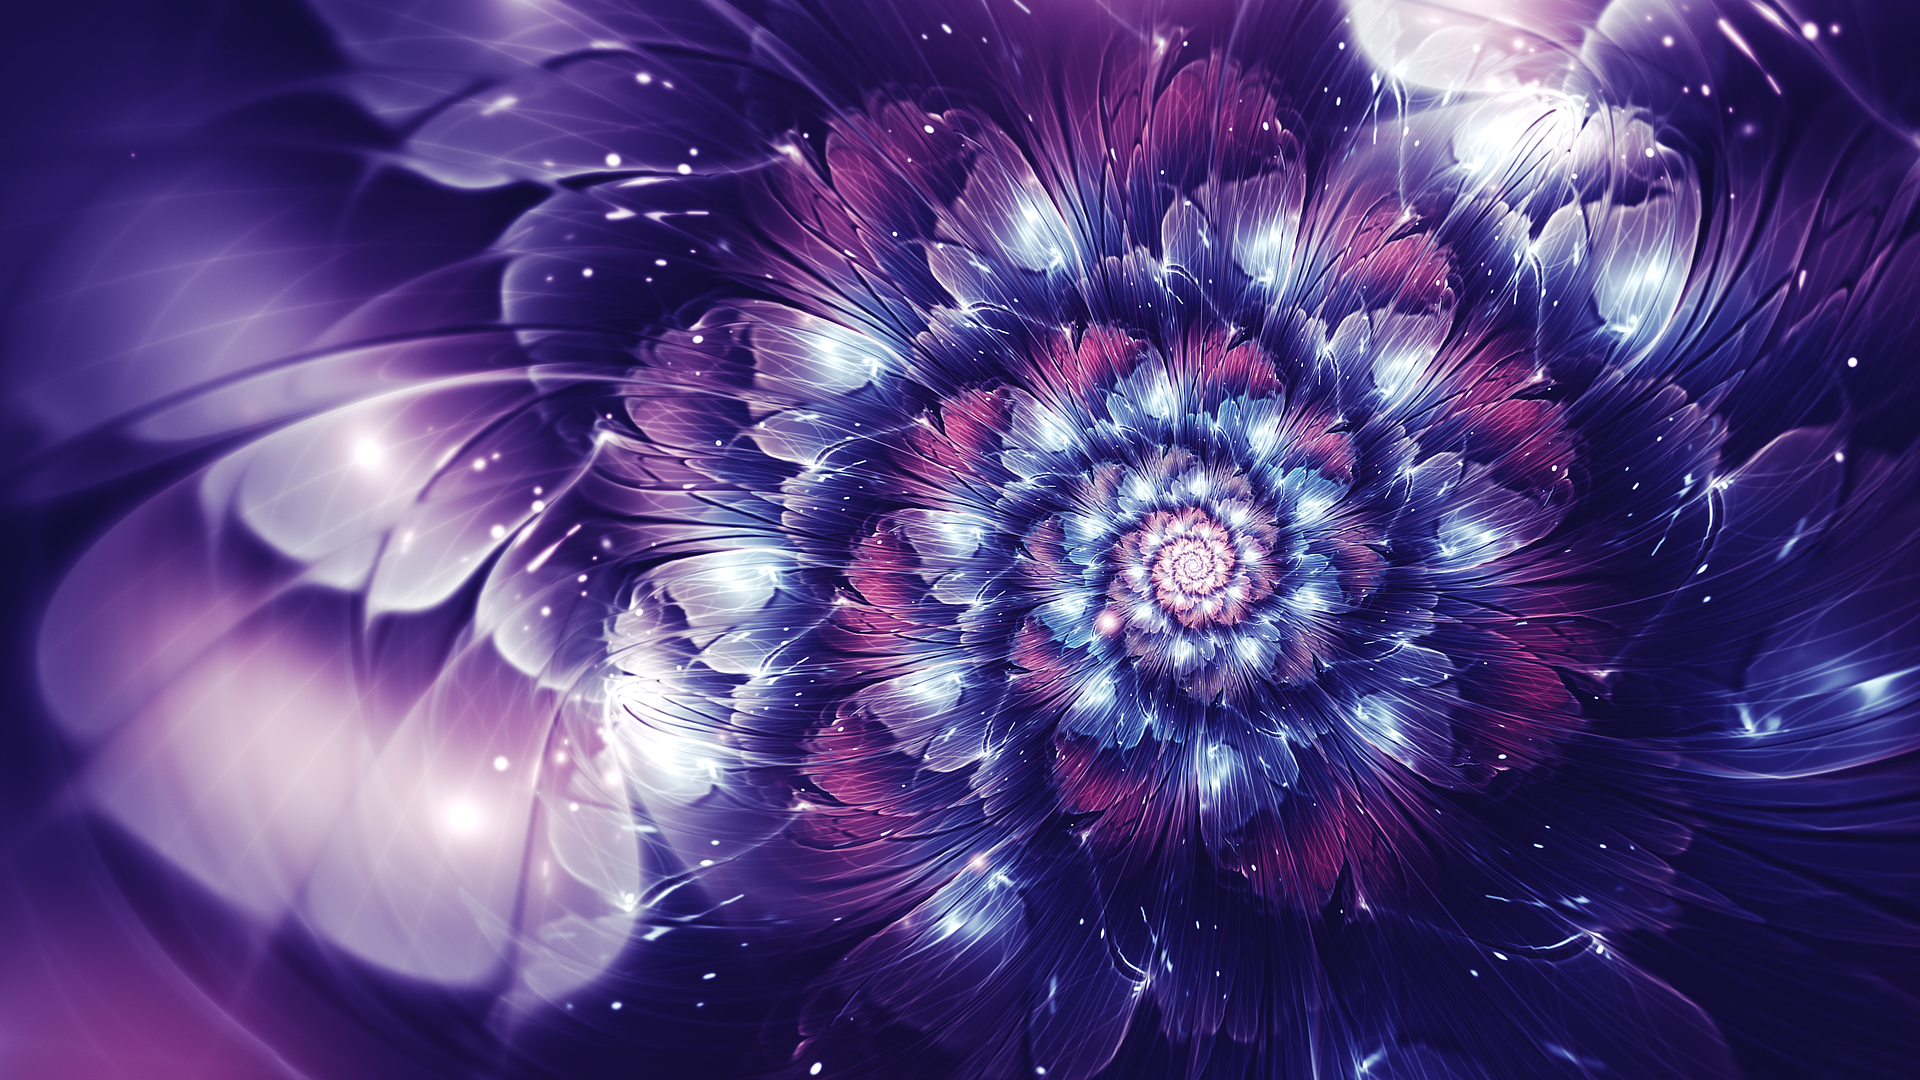 General 1920x1080 abstract fractal fractal flowers glowing digital art violet